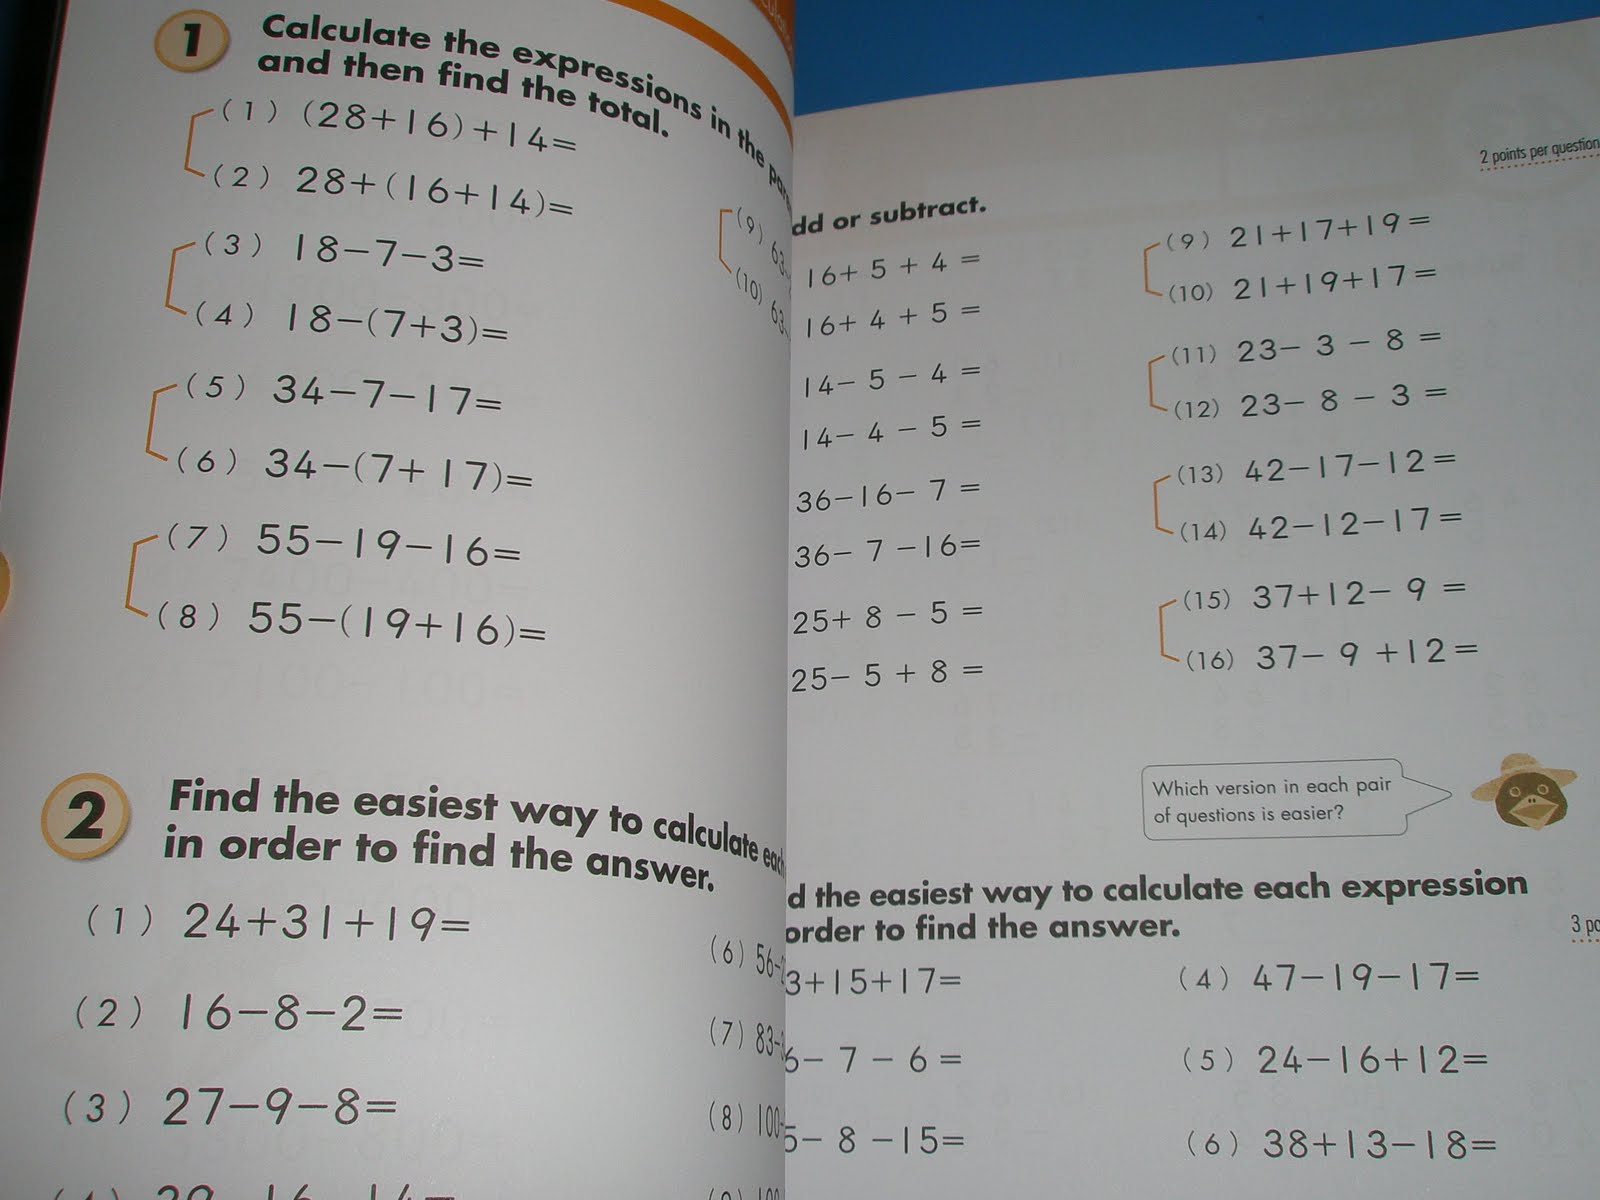 Kumon math workbooks : grade 3 division (2008, paperback) clean unmarked